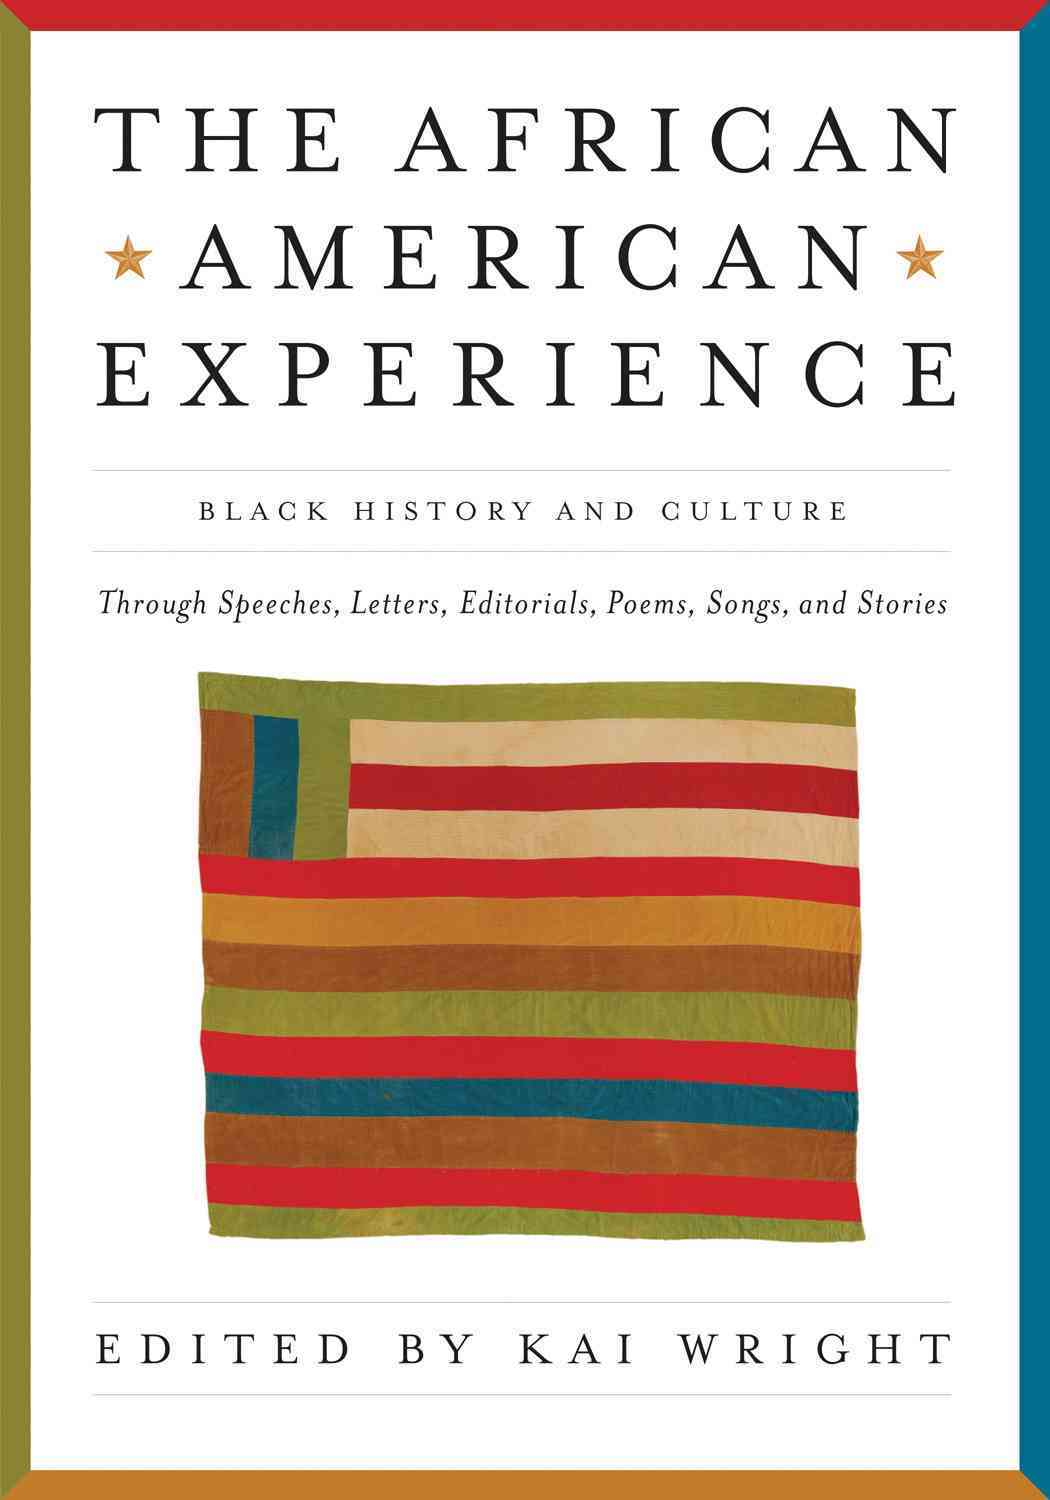 The African American Experience: Black History and Culture Through Original Speeches, Letters, Editorials, Poems,... (Paperback)